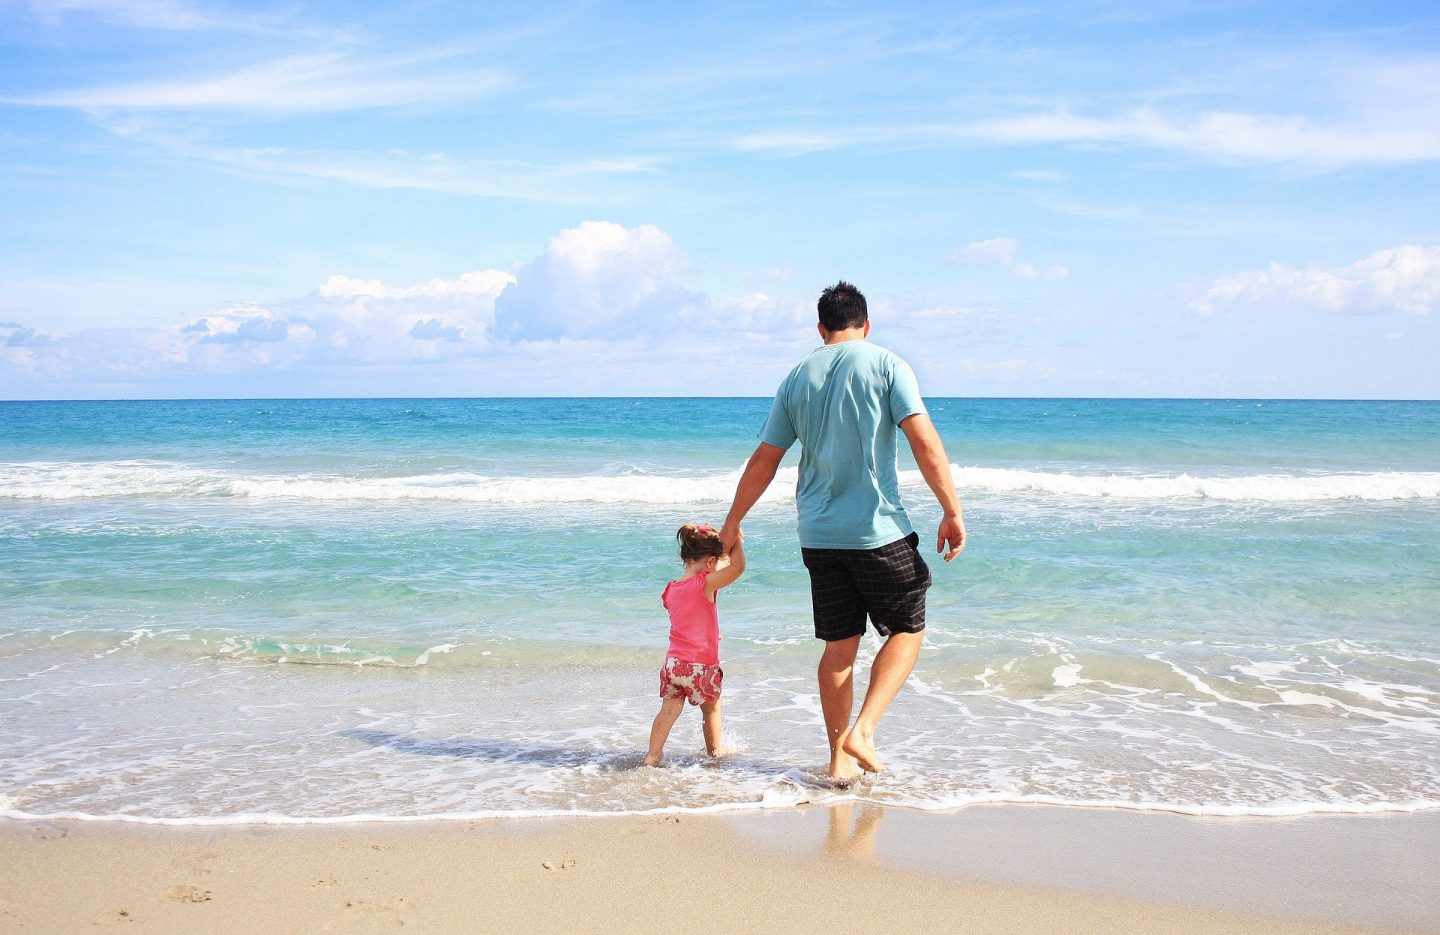 Daughter and Father paddling in water